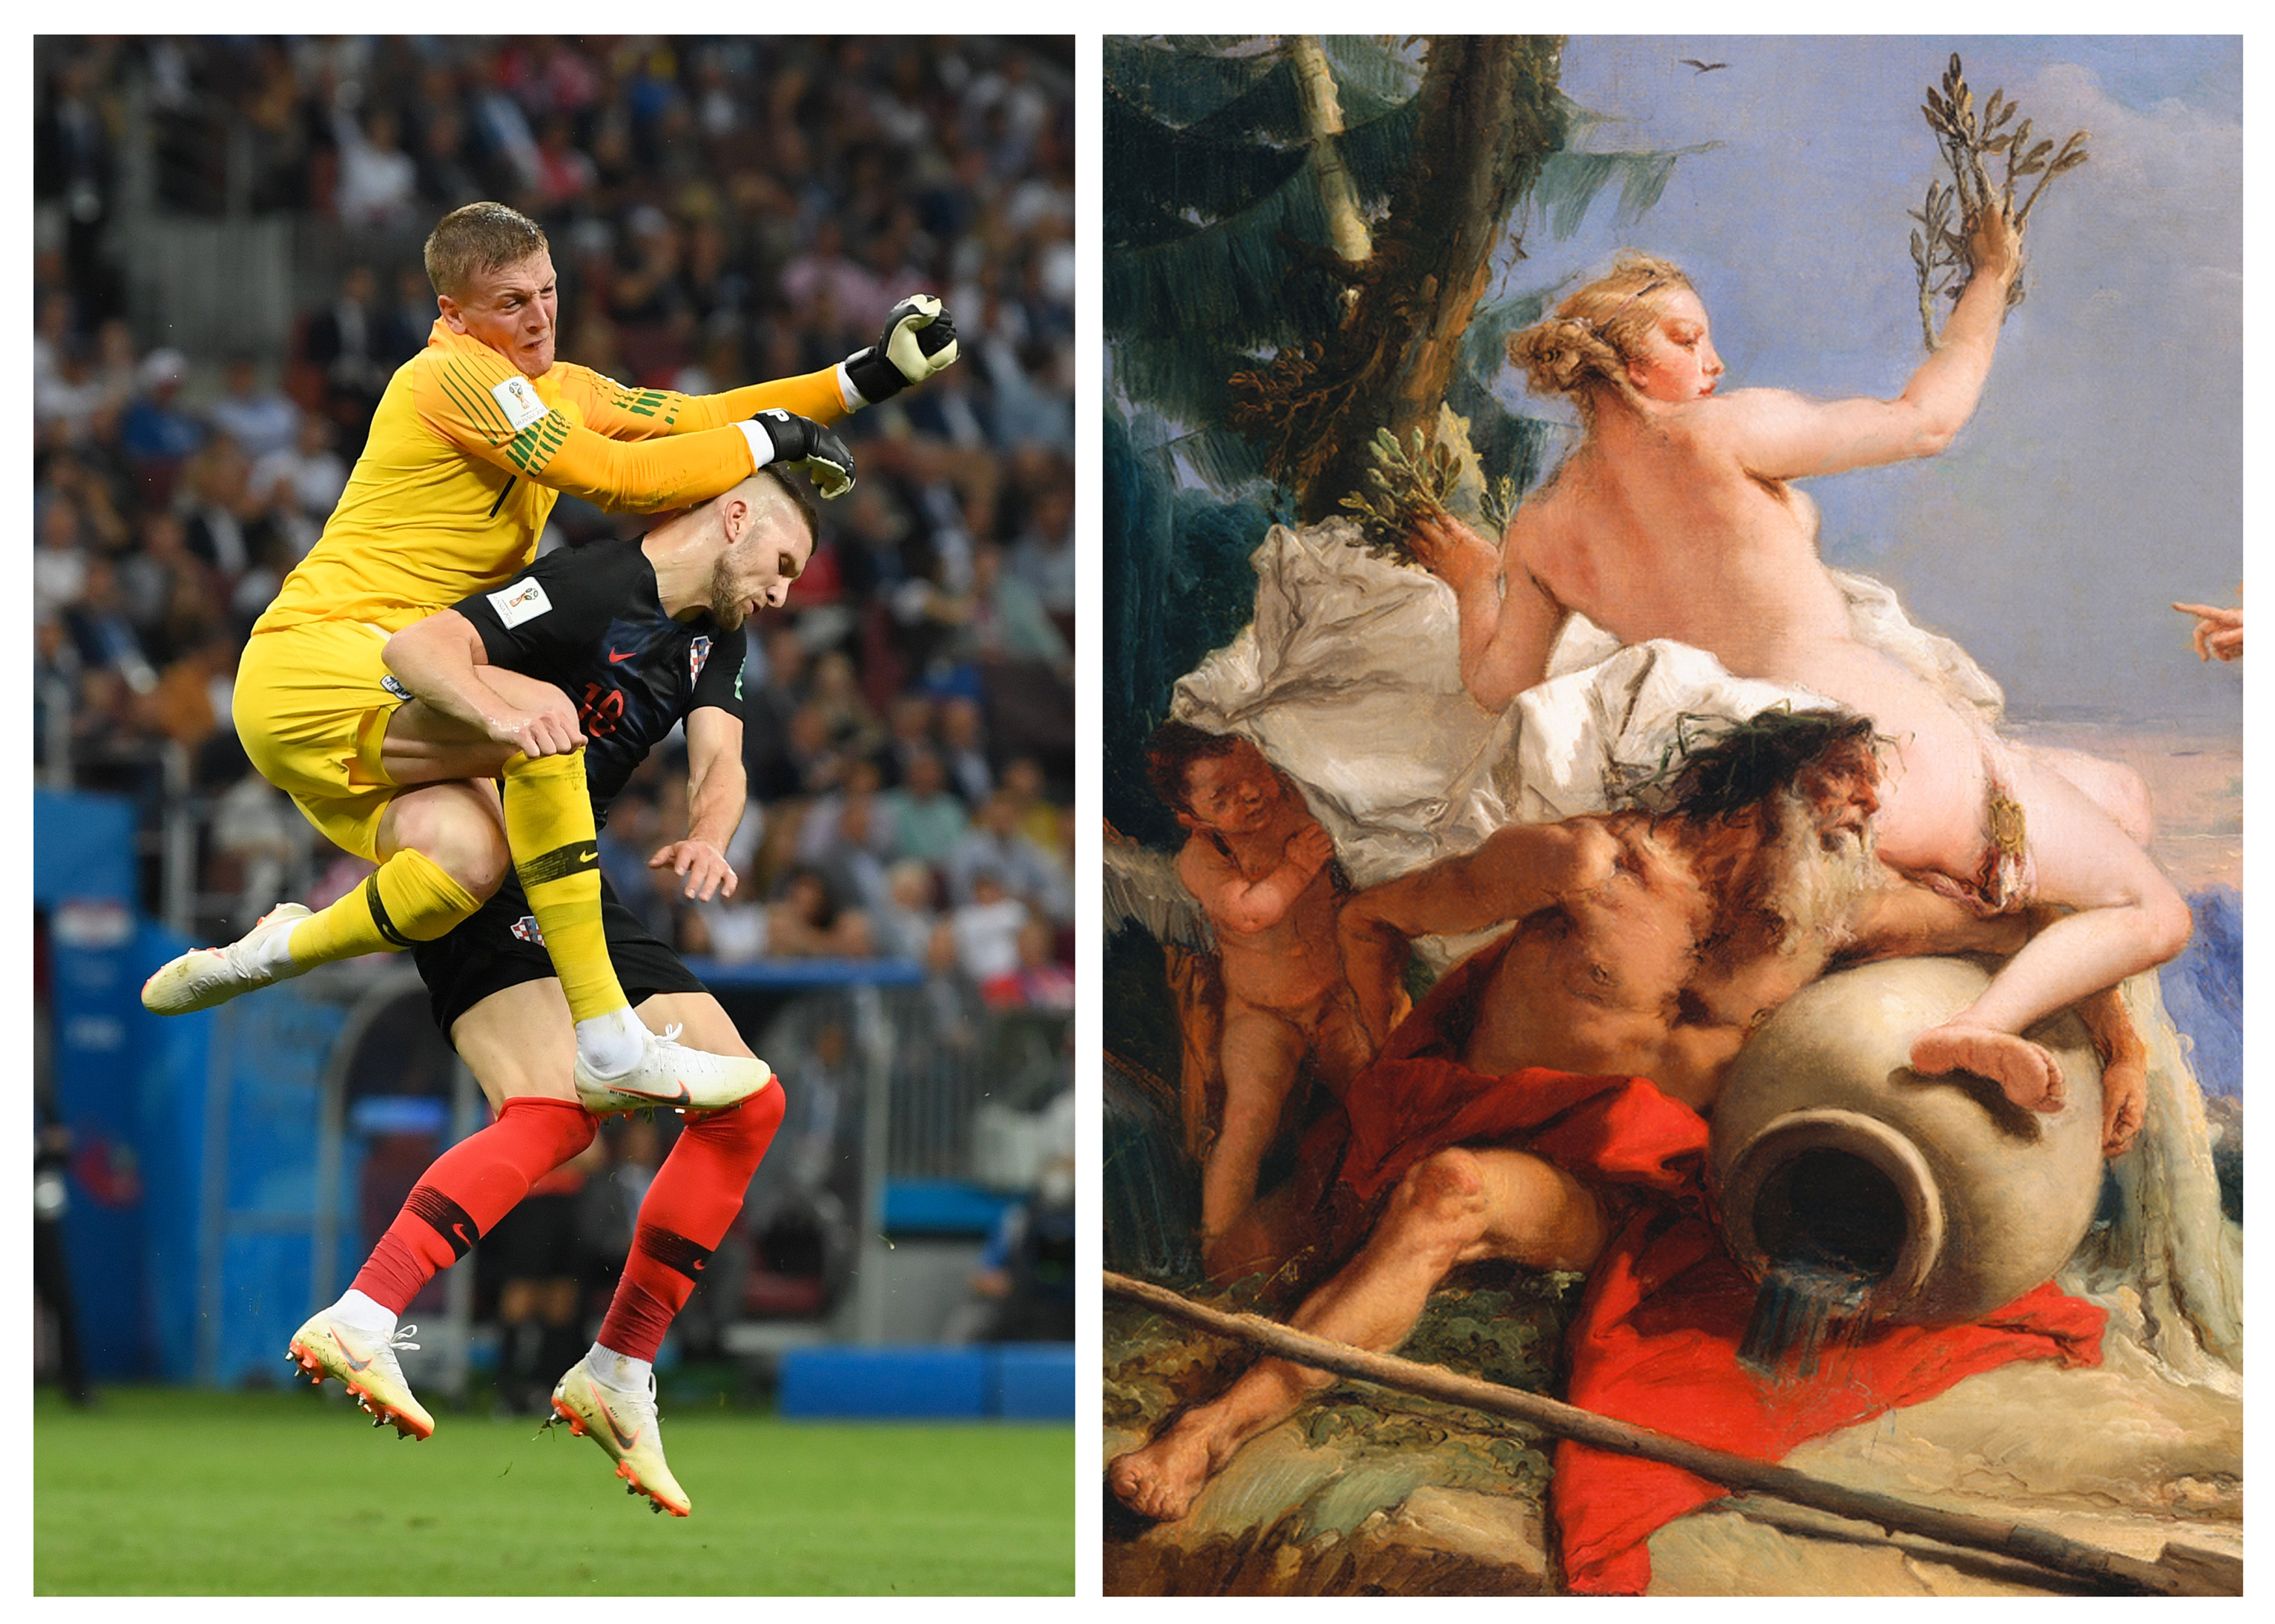 Jordan Pickford of England collides with Ante Rebic of Croatia during the Semi Final game on July 11, 2018.                 ; Apollo Pursuing Daphne by Giovanni Battista Tiepolo